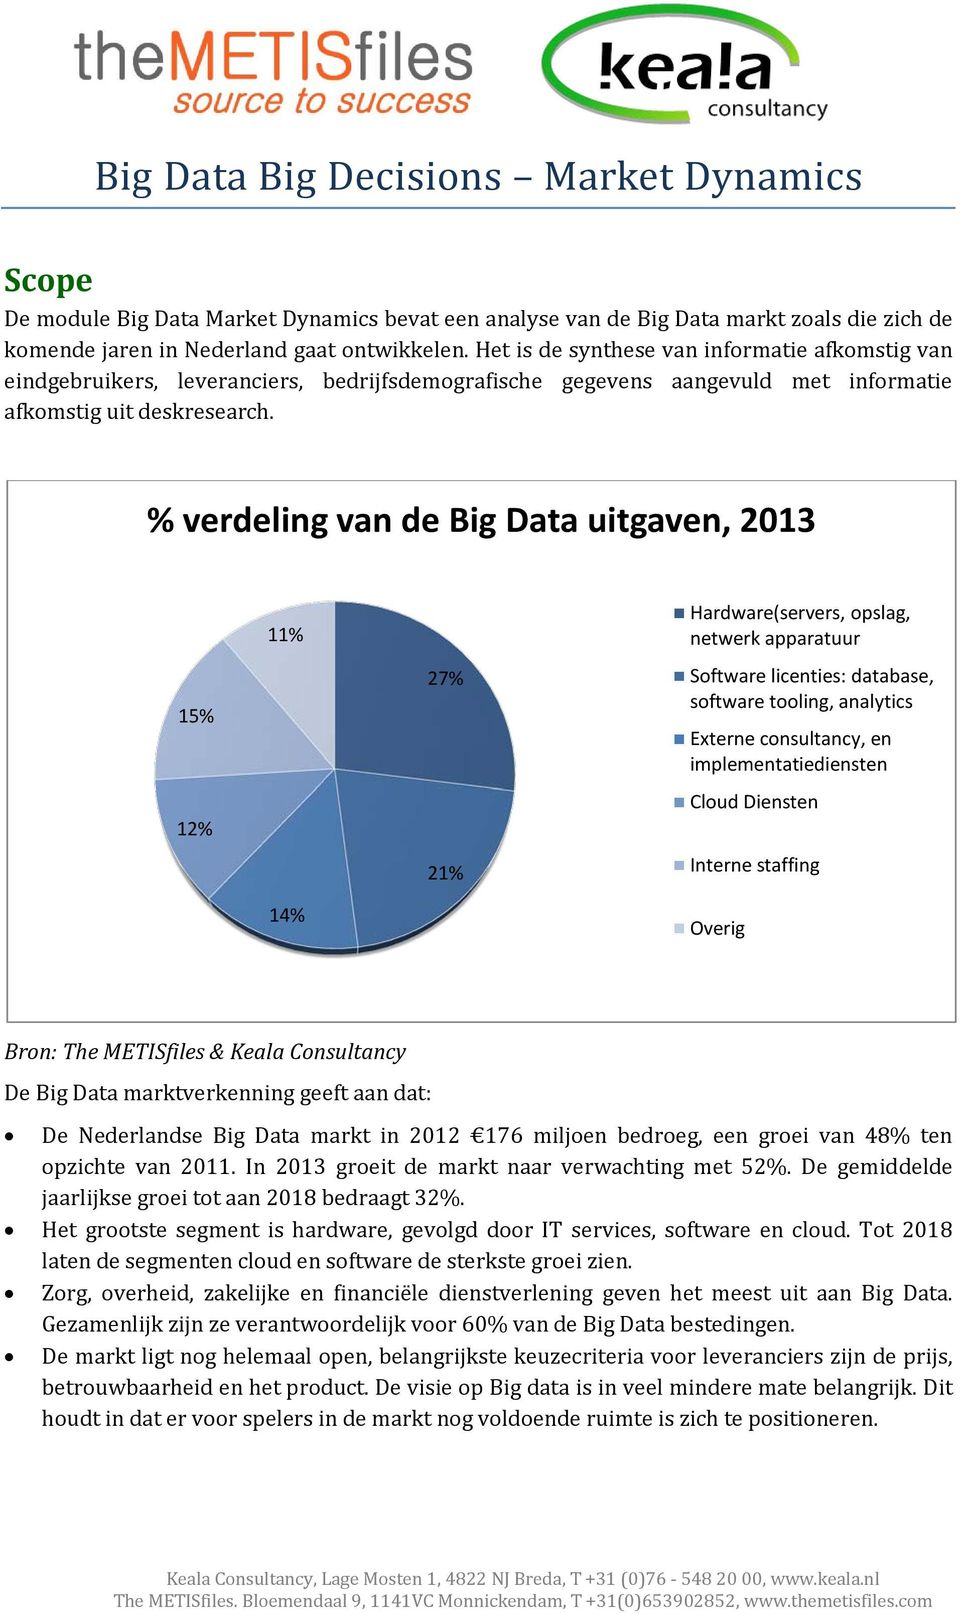 % verdeling van de Big Data uitgaven, 2013 15% 12% 11% 14% 27% 21% Hardware(servers, opslag, netwerk apparatuur Software licenties: database, software tooling, analytics Externe consultancy, en